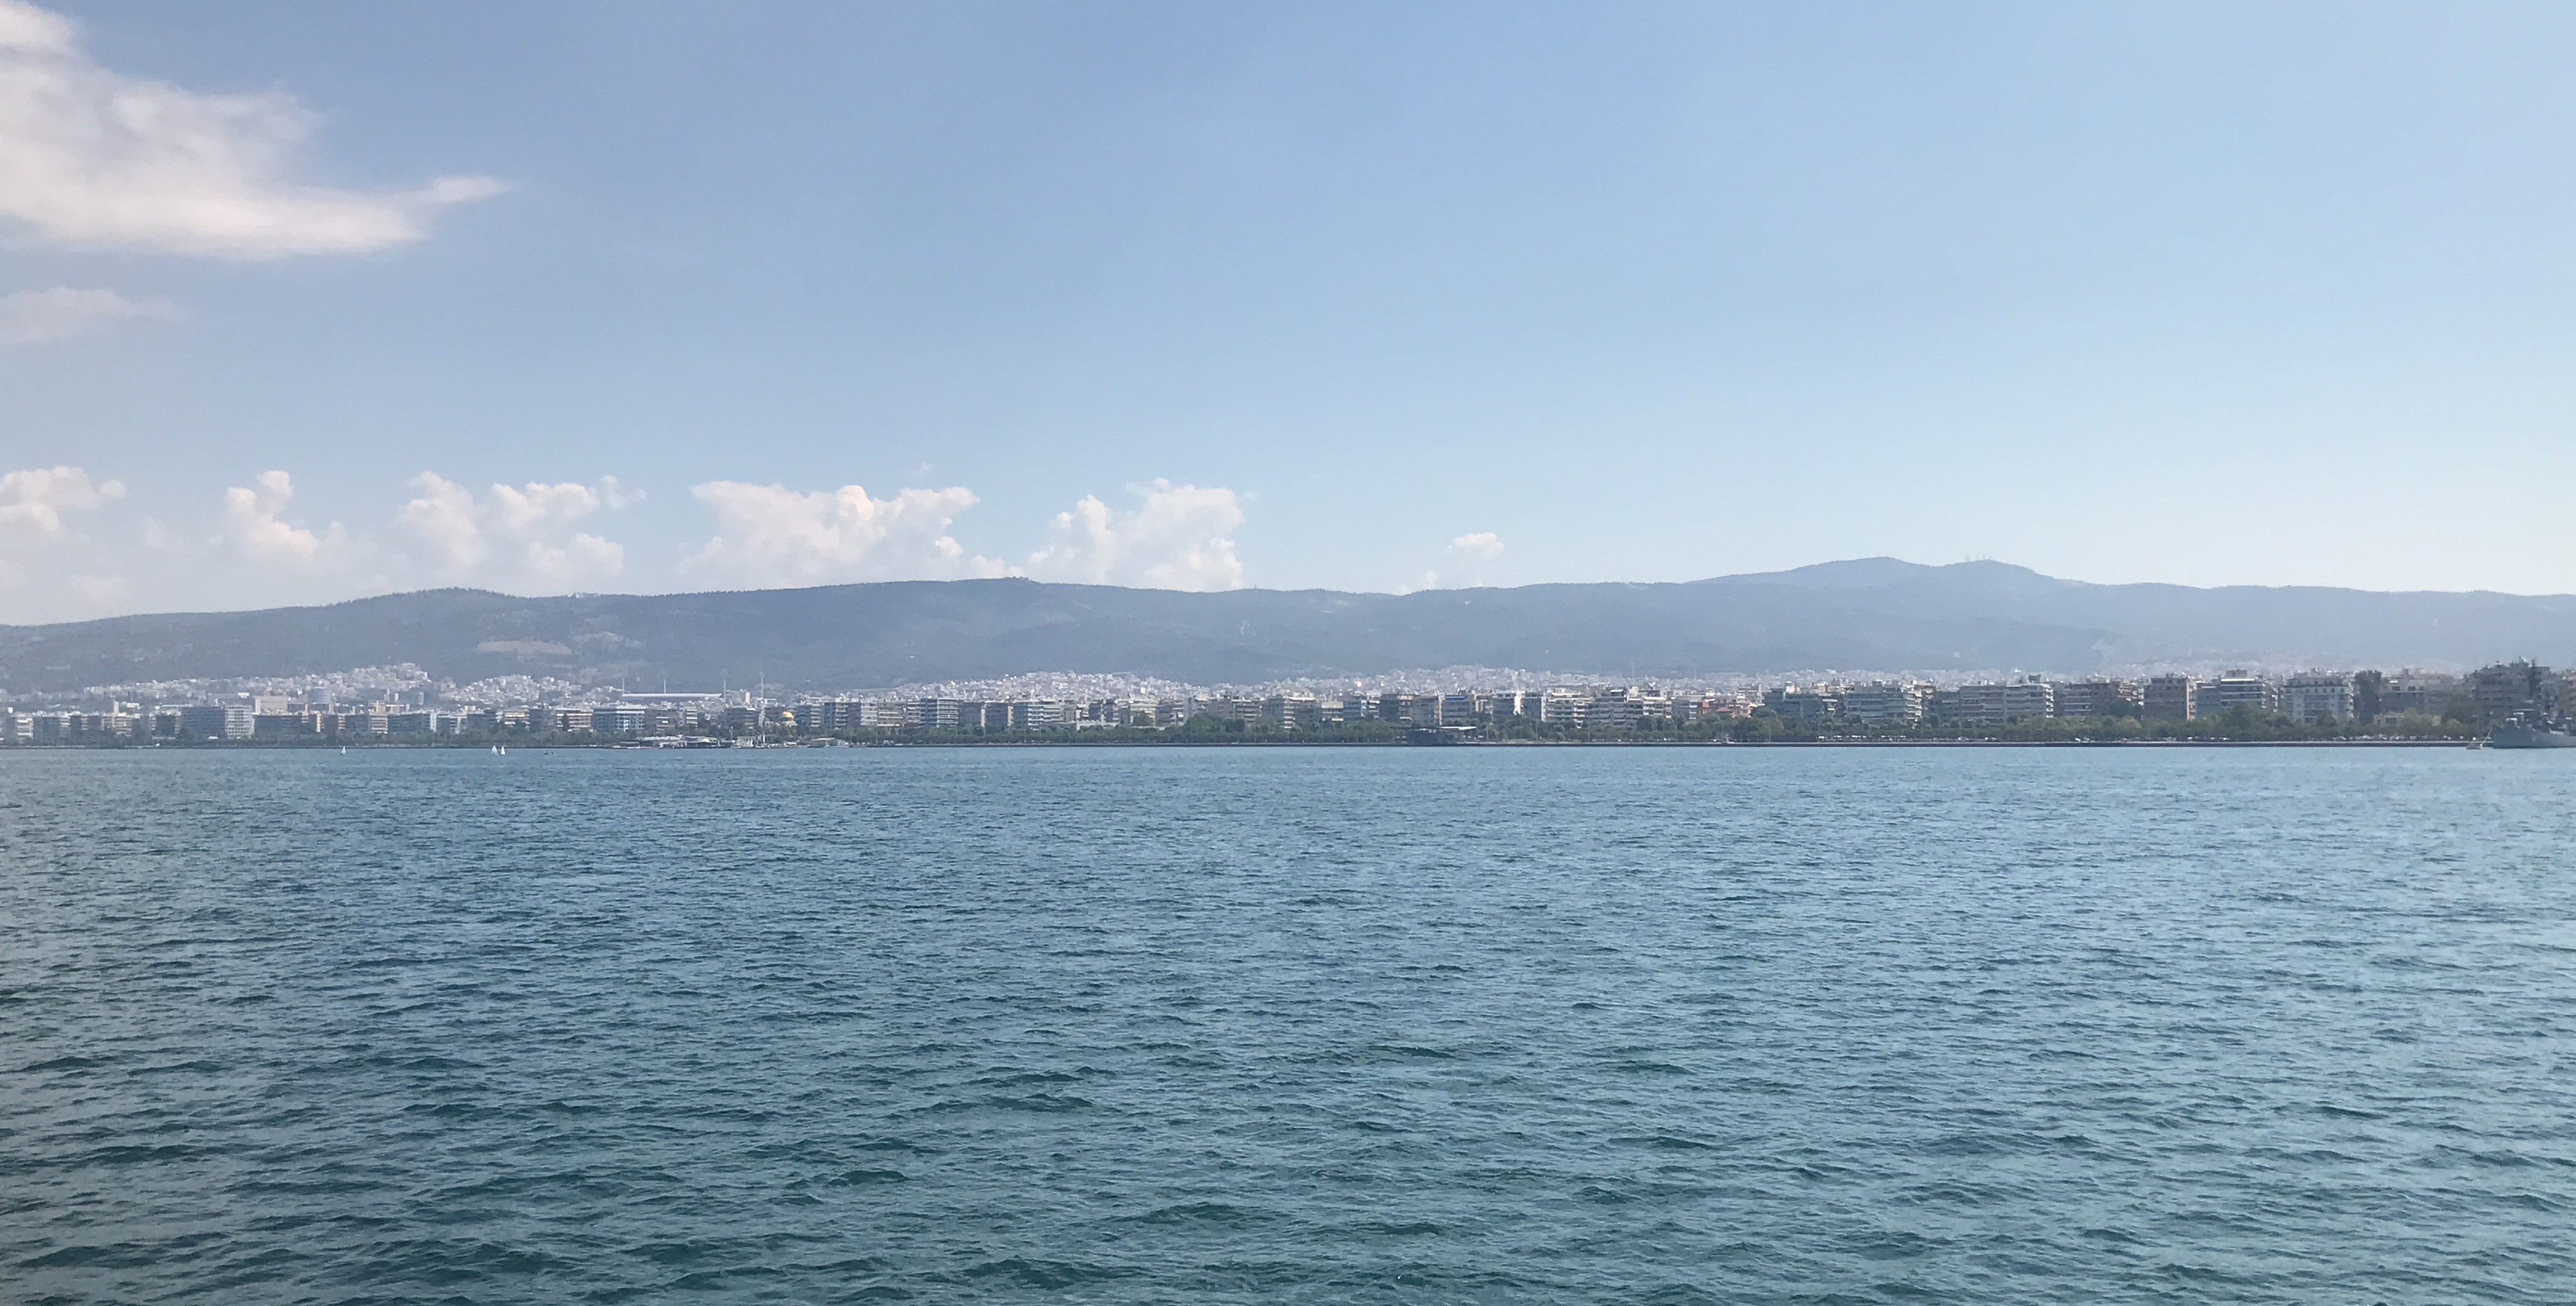 thessaloniki-view-SFrPk.JPG